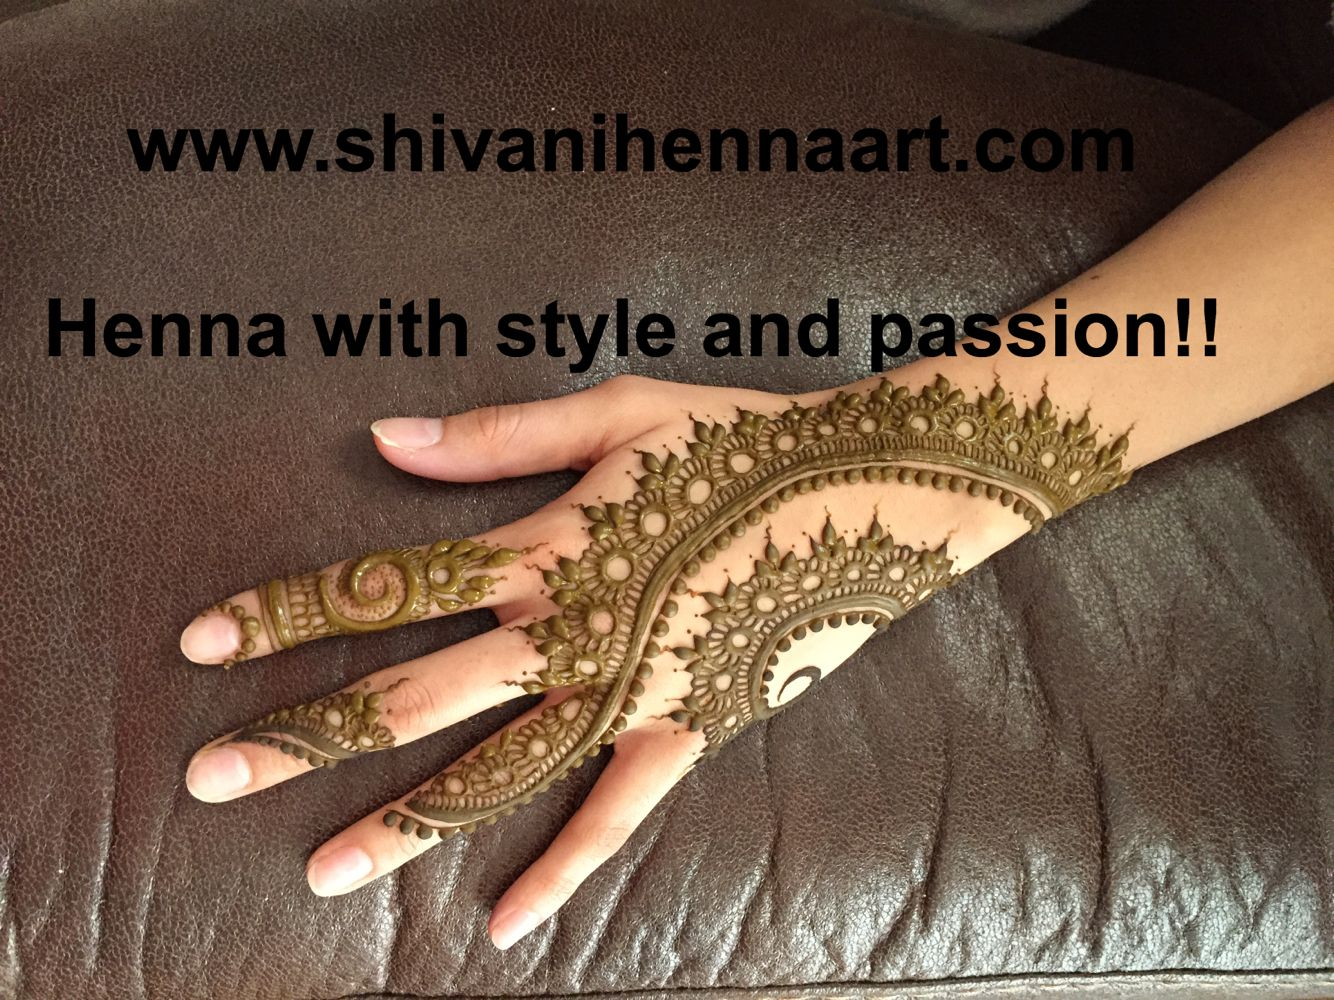 Mehndi Designs Please : For the booking questions please email us on ✉️shivanihennaart